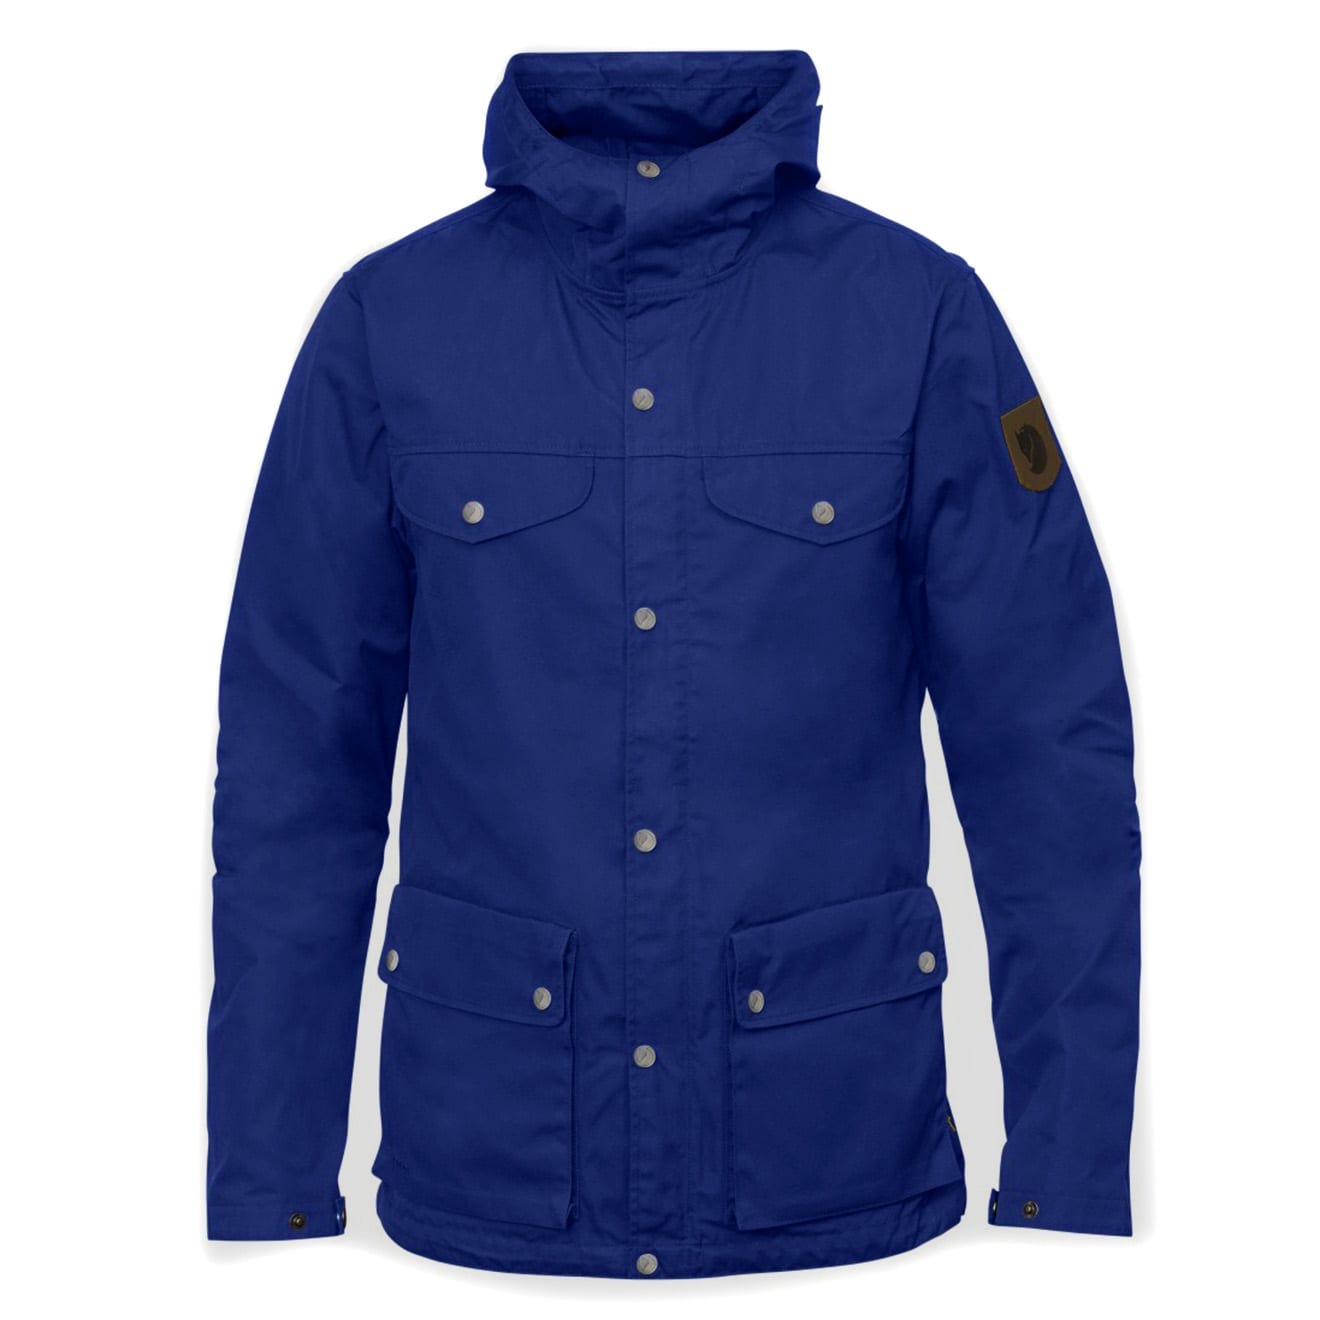 official photos d2574 21ccc Fjallraven Greenland Jacket Deep Blue - The Sporting Lodge